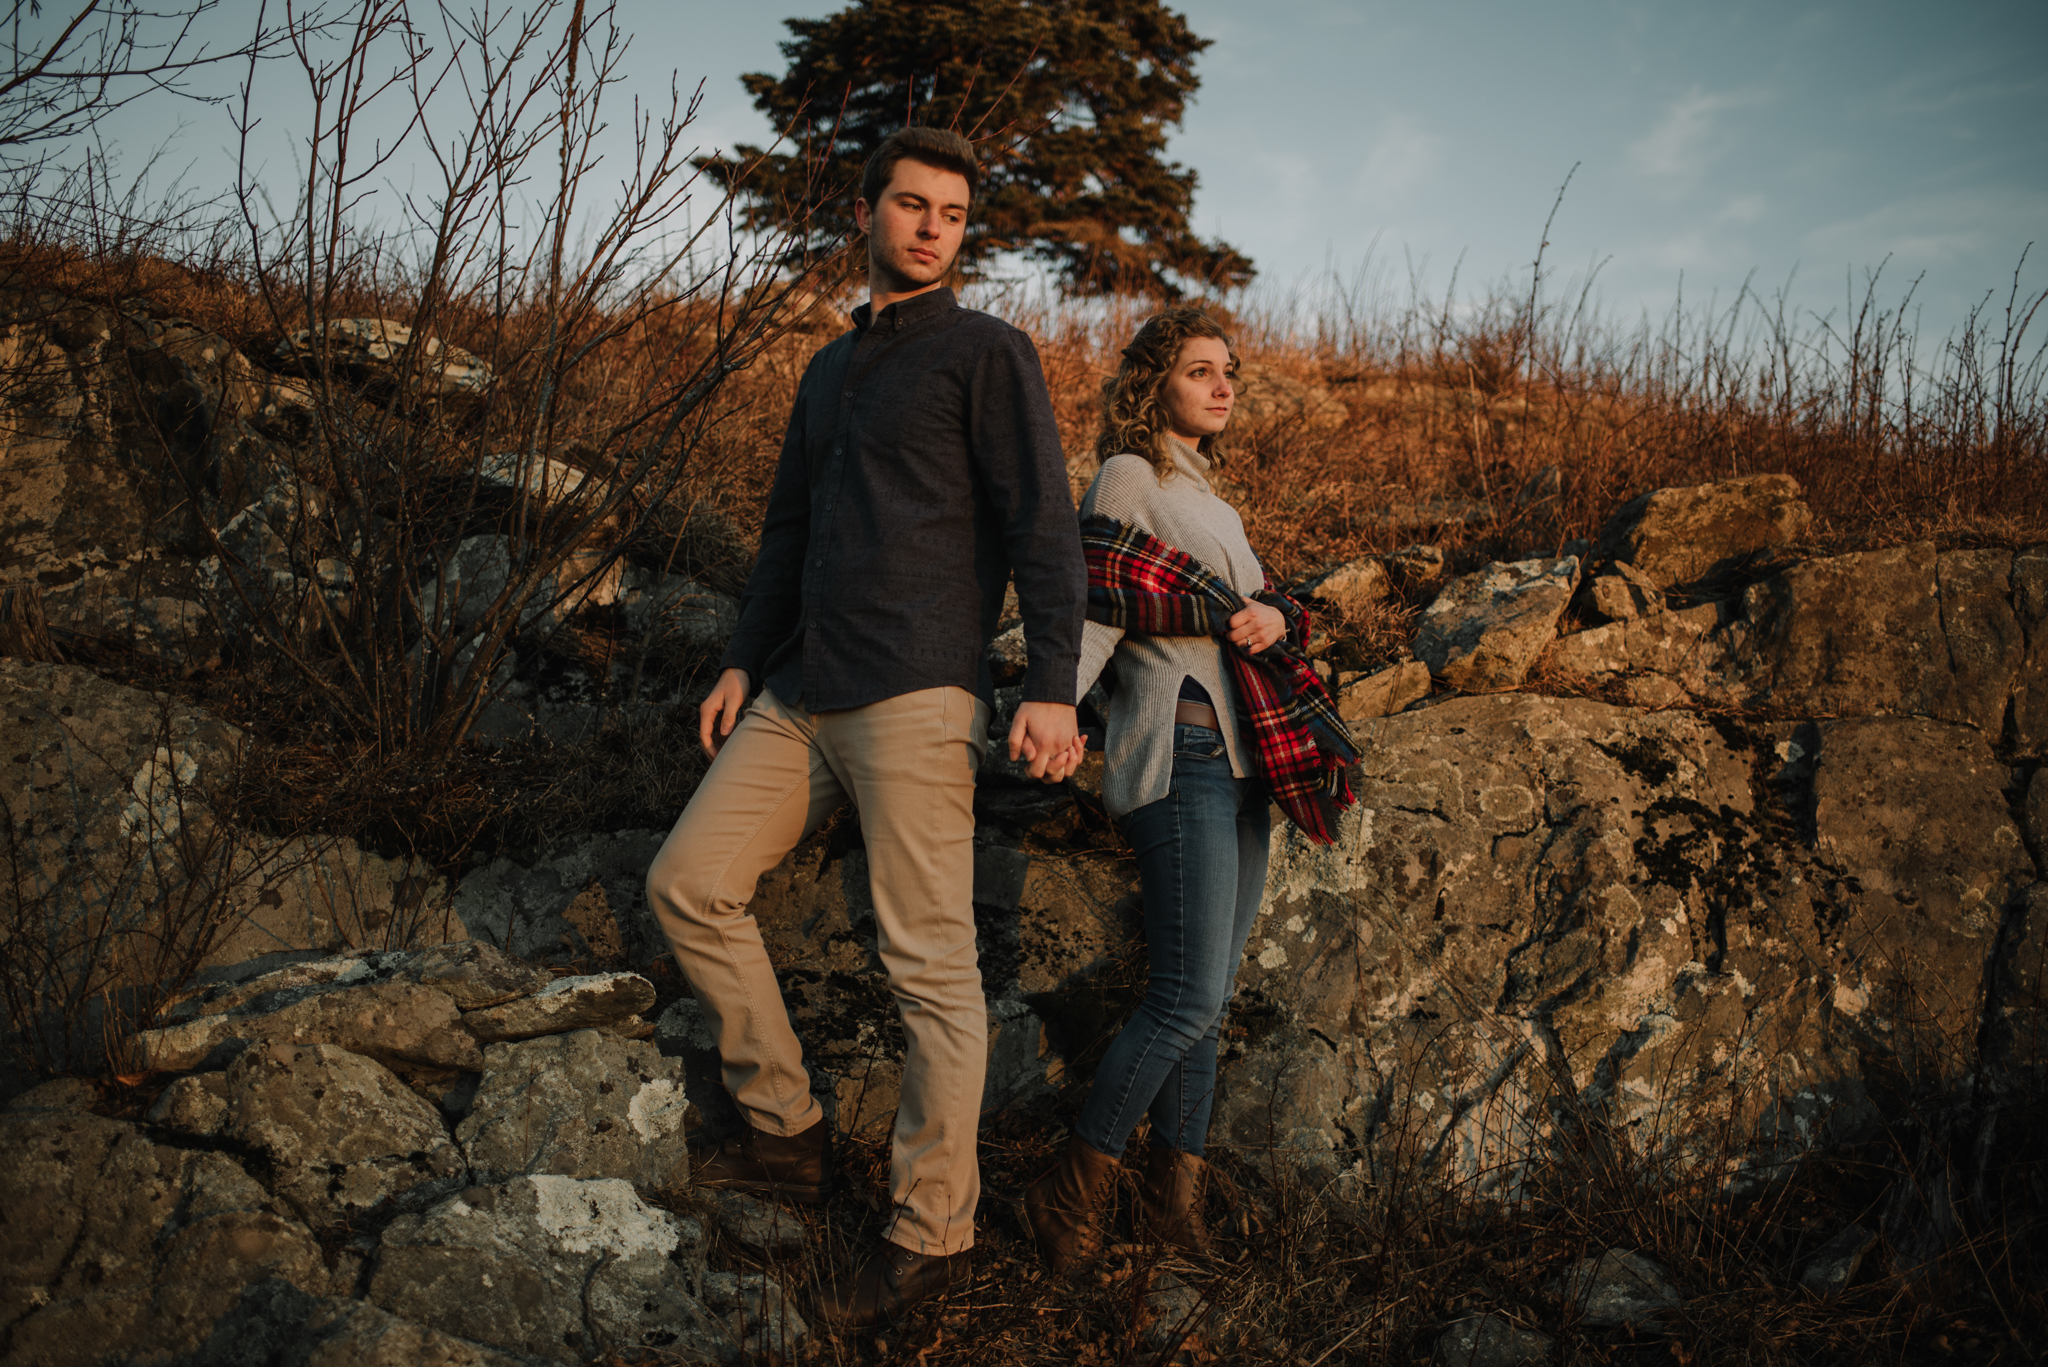 Alli and Mitchell - Shenandoah National Park Adventure Winter Engagement Session on Skyline Drive - White Sails Creative Elopement Photography_52.JPG